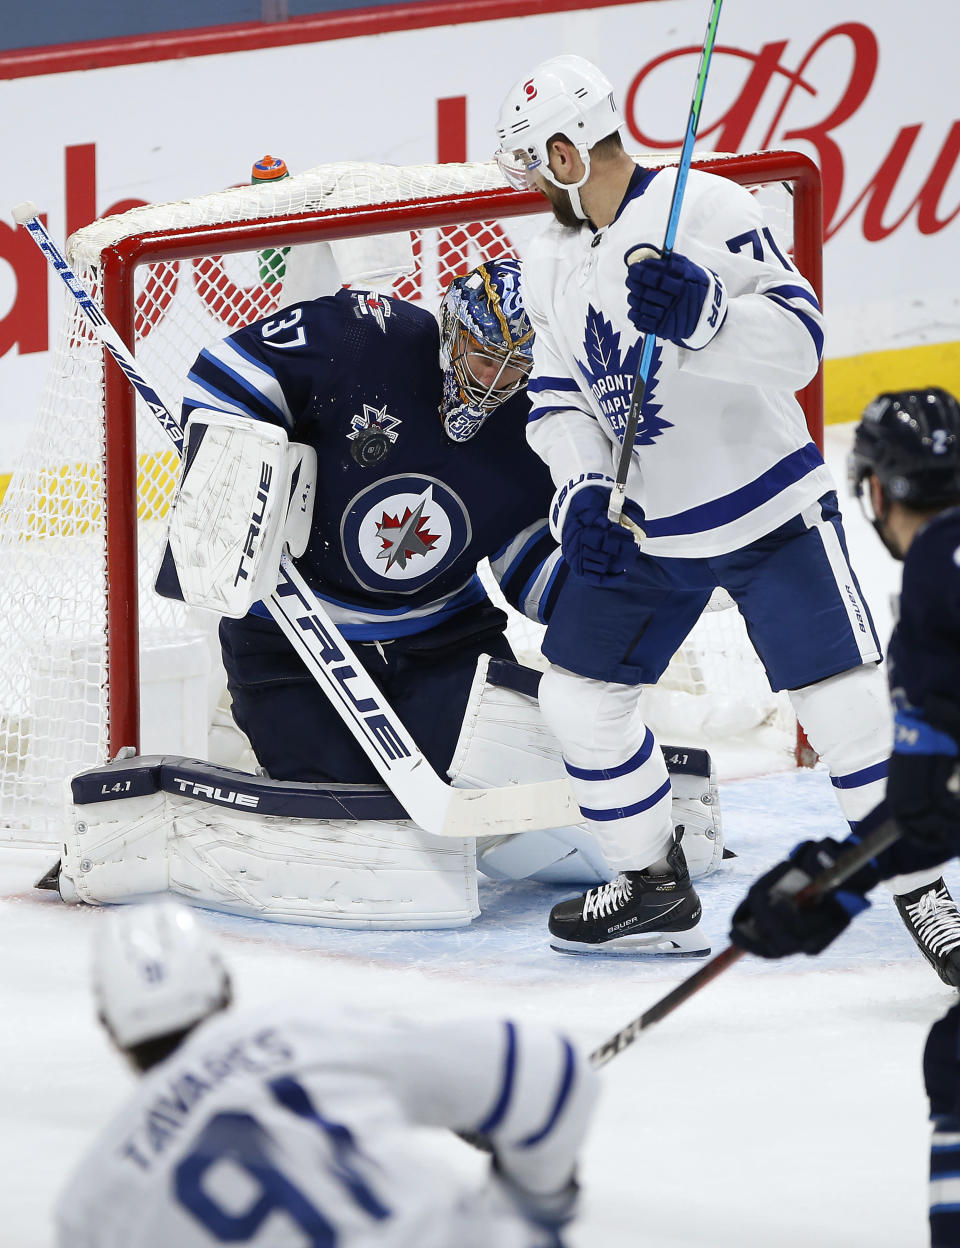 Winnipeg Jets goaltender Connor Hellebuyck (37) makes a save on Toronto Maple Leafs' John Tavares (91) as Nick Foligno (71) applies pressure during the second period of an NHL hockey game Friday, May 14, 2021, in Winnipeg, Manitoba. (John Woods/The Canadian Press via AP)